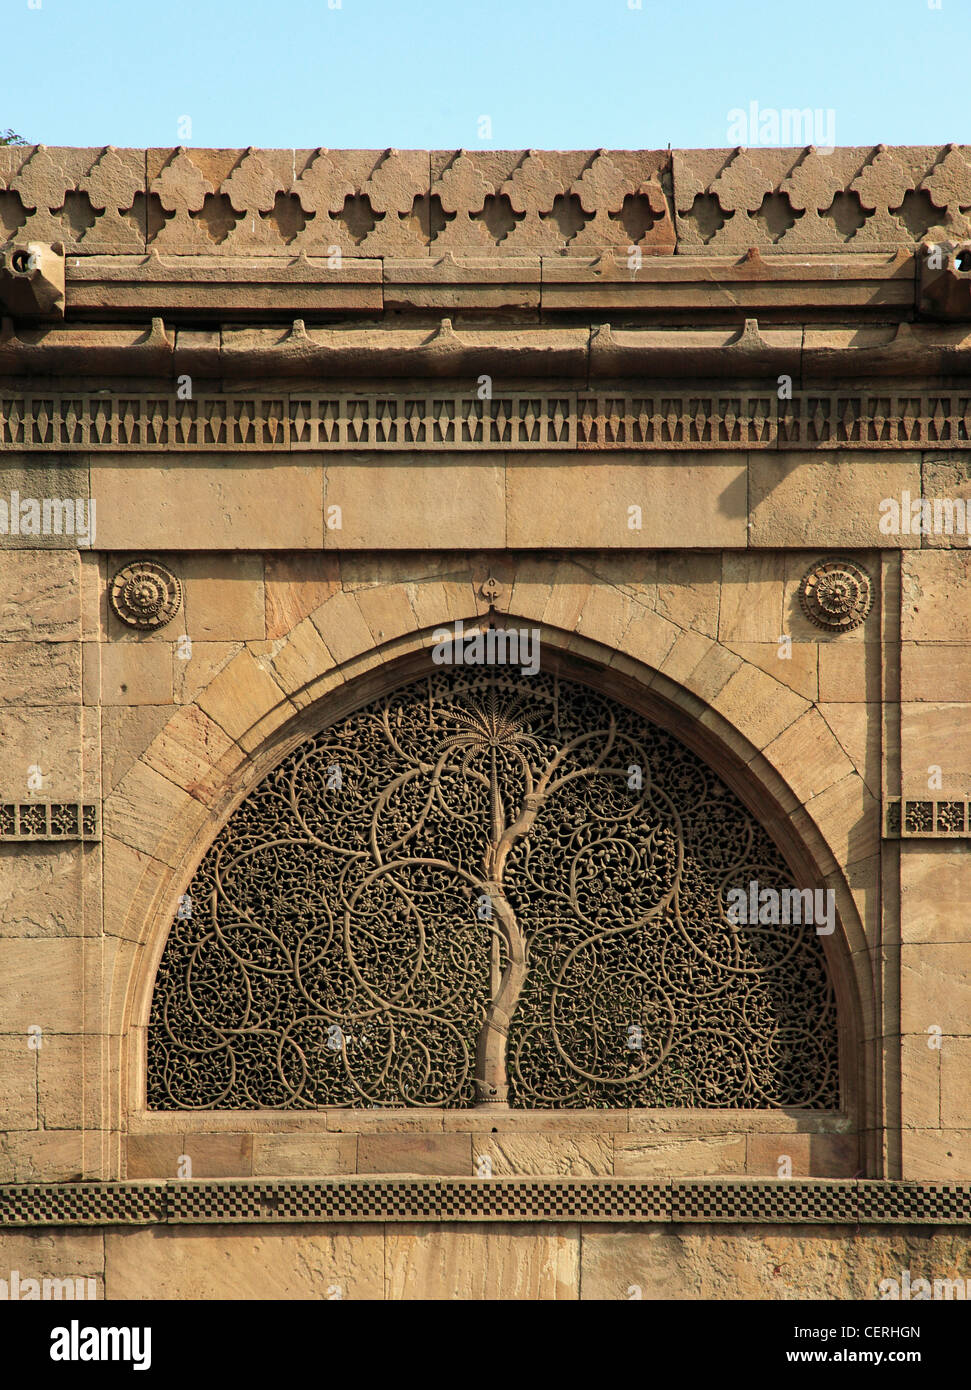 India, Gujarat, Ahmedabad, Sidi Sayad's Mosque, jaali, carved stone window, tree of life, - Stock Image